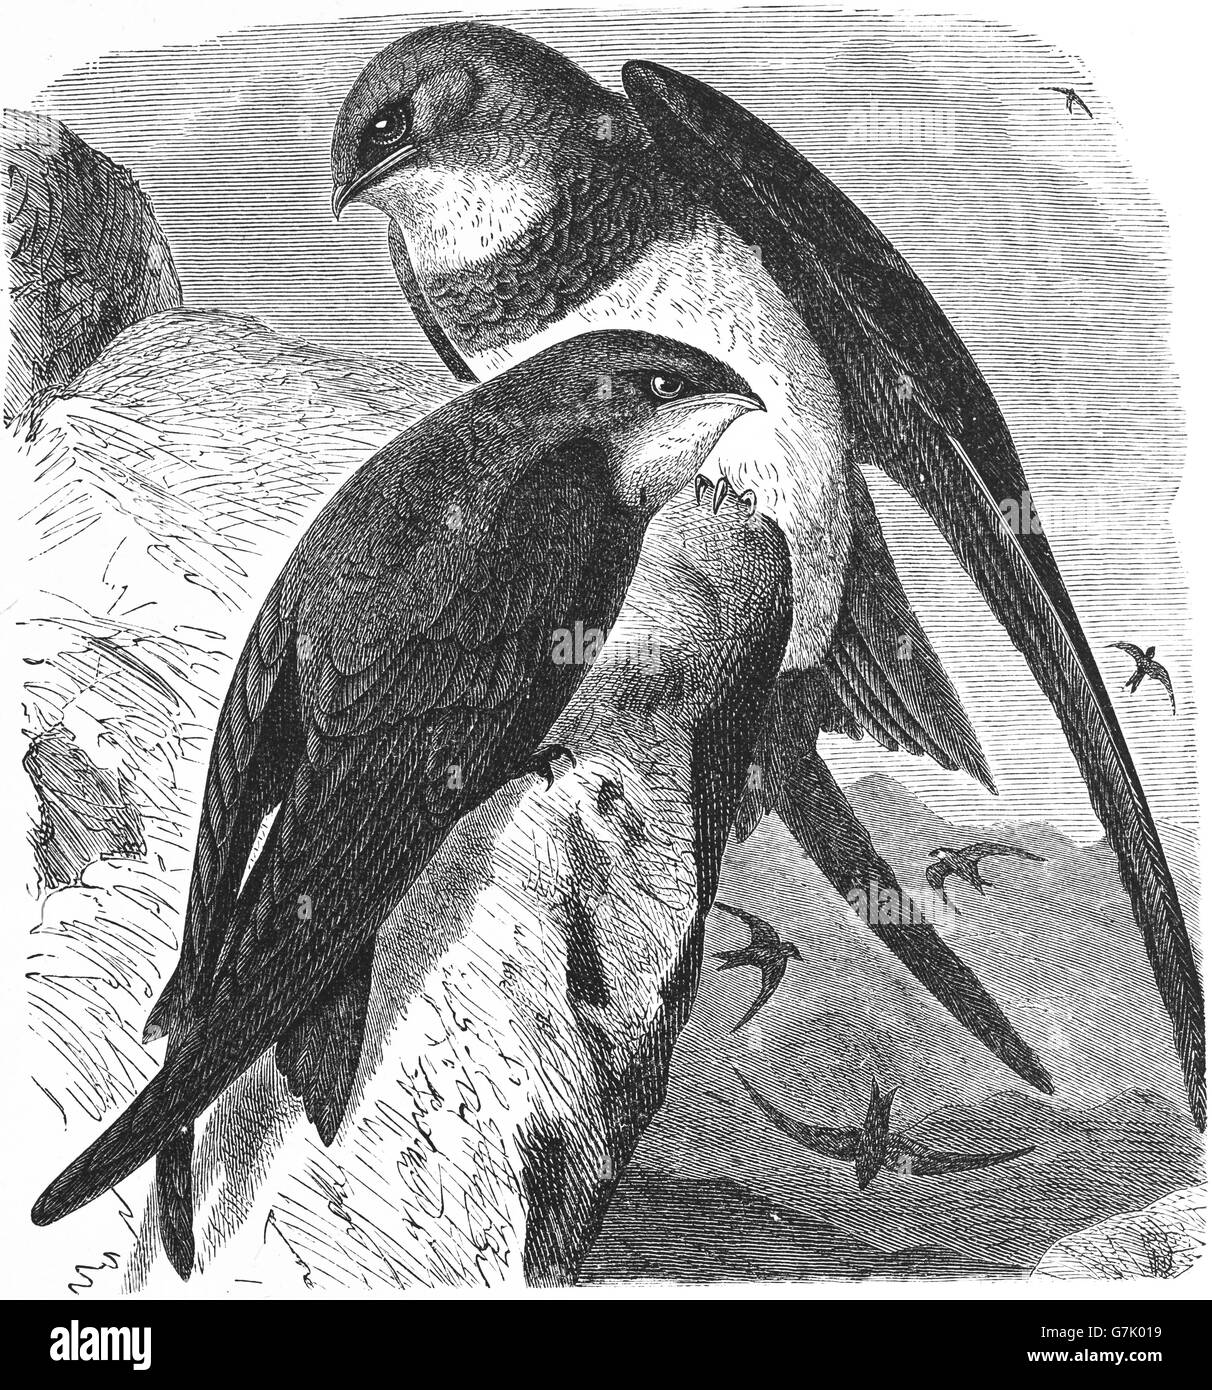 Alpine swift, Tachymarptis melba and Common swift, Apus apus, illustration from book dated 1904 Stock Photo